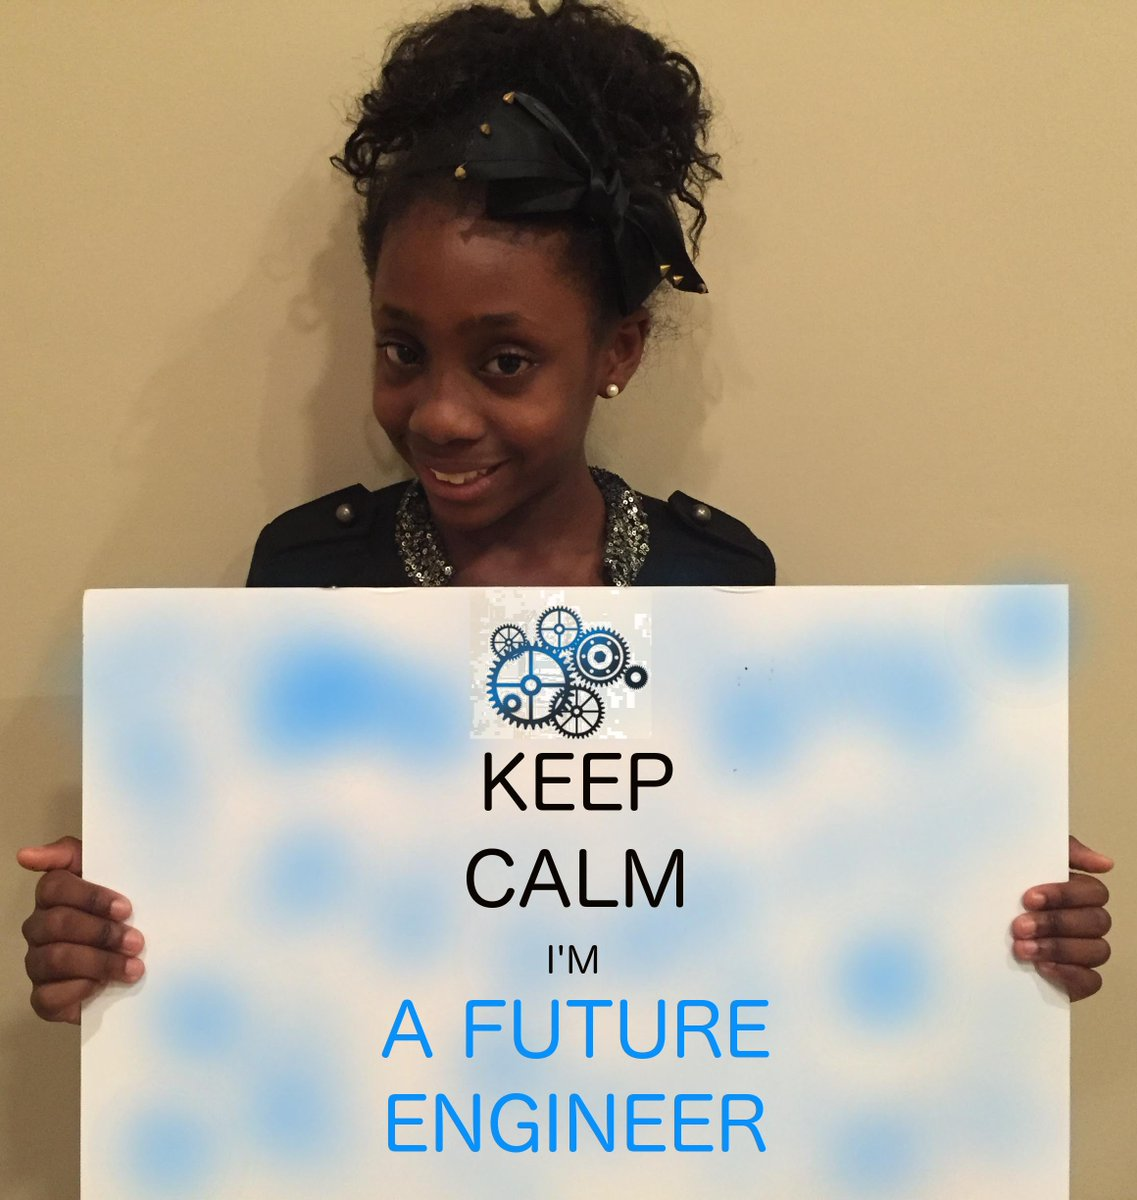 I want to Be an Engineer because I like to figure things out and I'm smart enough #Be1of10K  @JacksonvilleFl5 https://t.co/IUICSanQAu